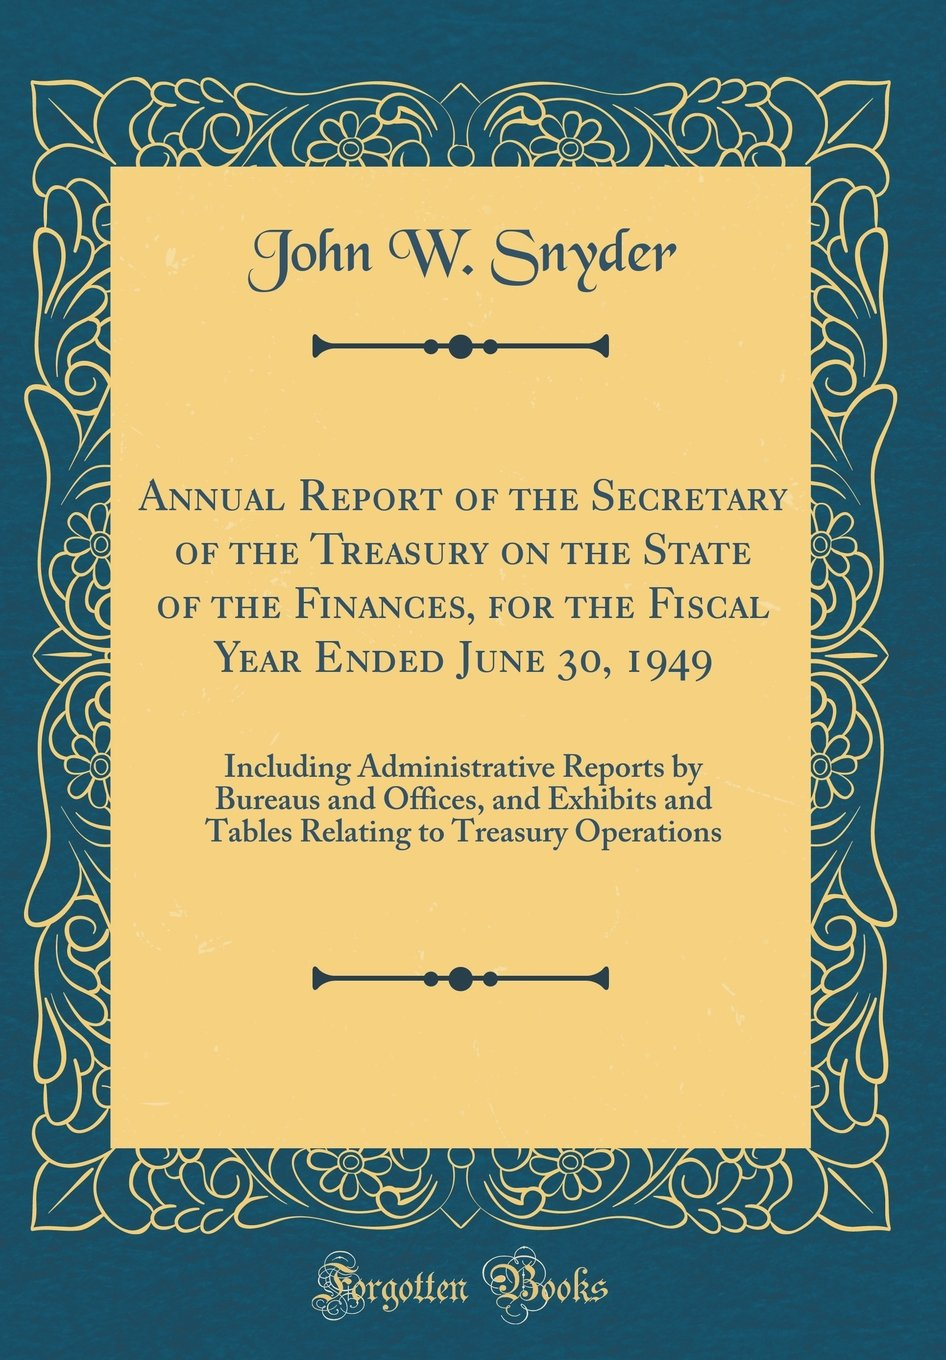 Annual Report of the Secretary of the Treasury on the State of the Finances, for the Fiscal Year Ended June 30, 1949: Including Administrative Reports ... to Treasury Operations (Classic Reprint) pdf epub